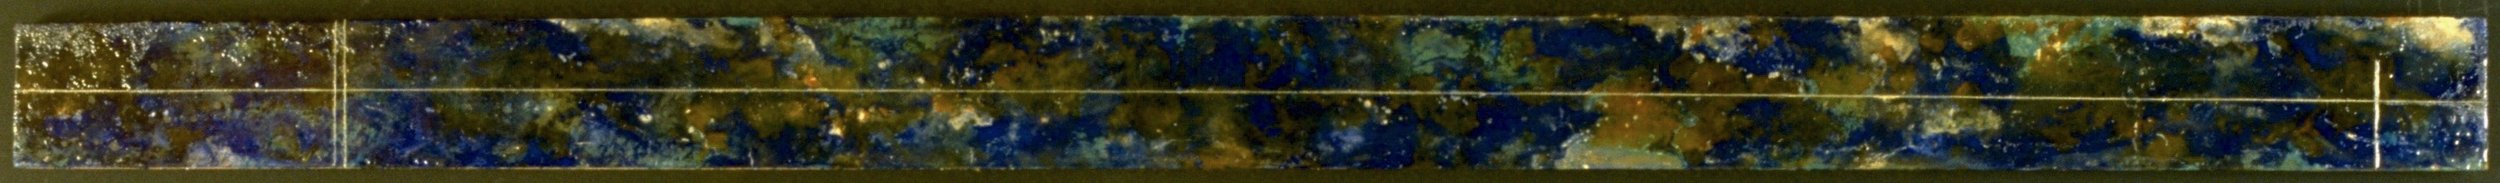 Satellite, 1995  encaustic, oil and resin on panel 5 x 96 inches  Private Collection, Portland